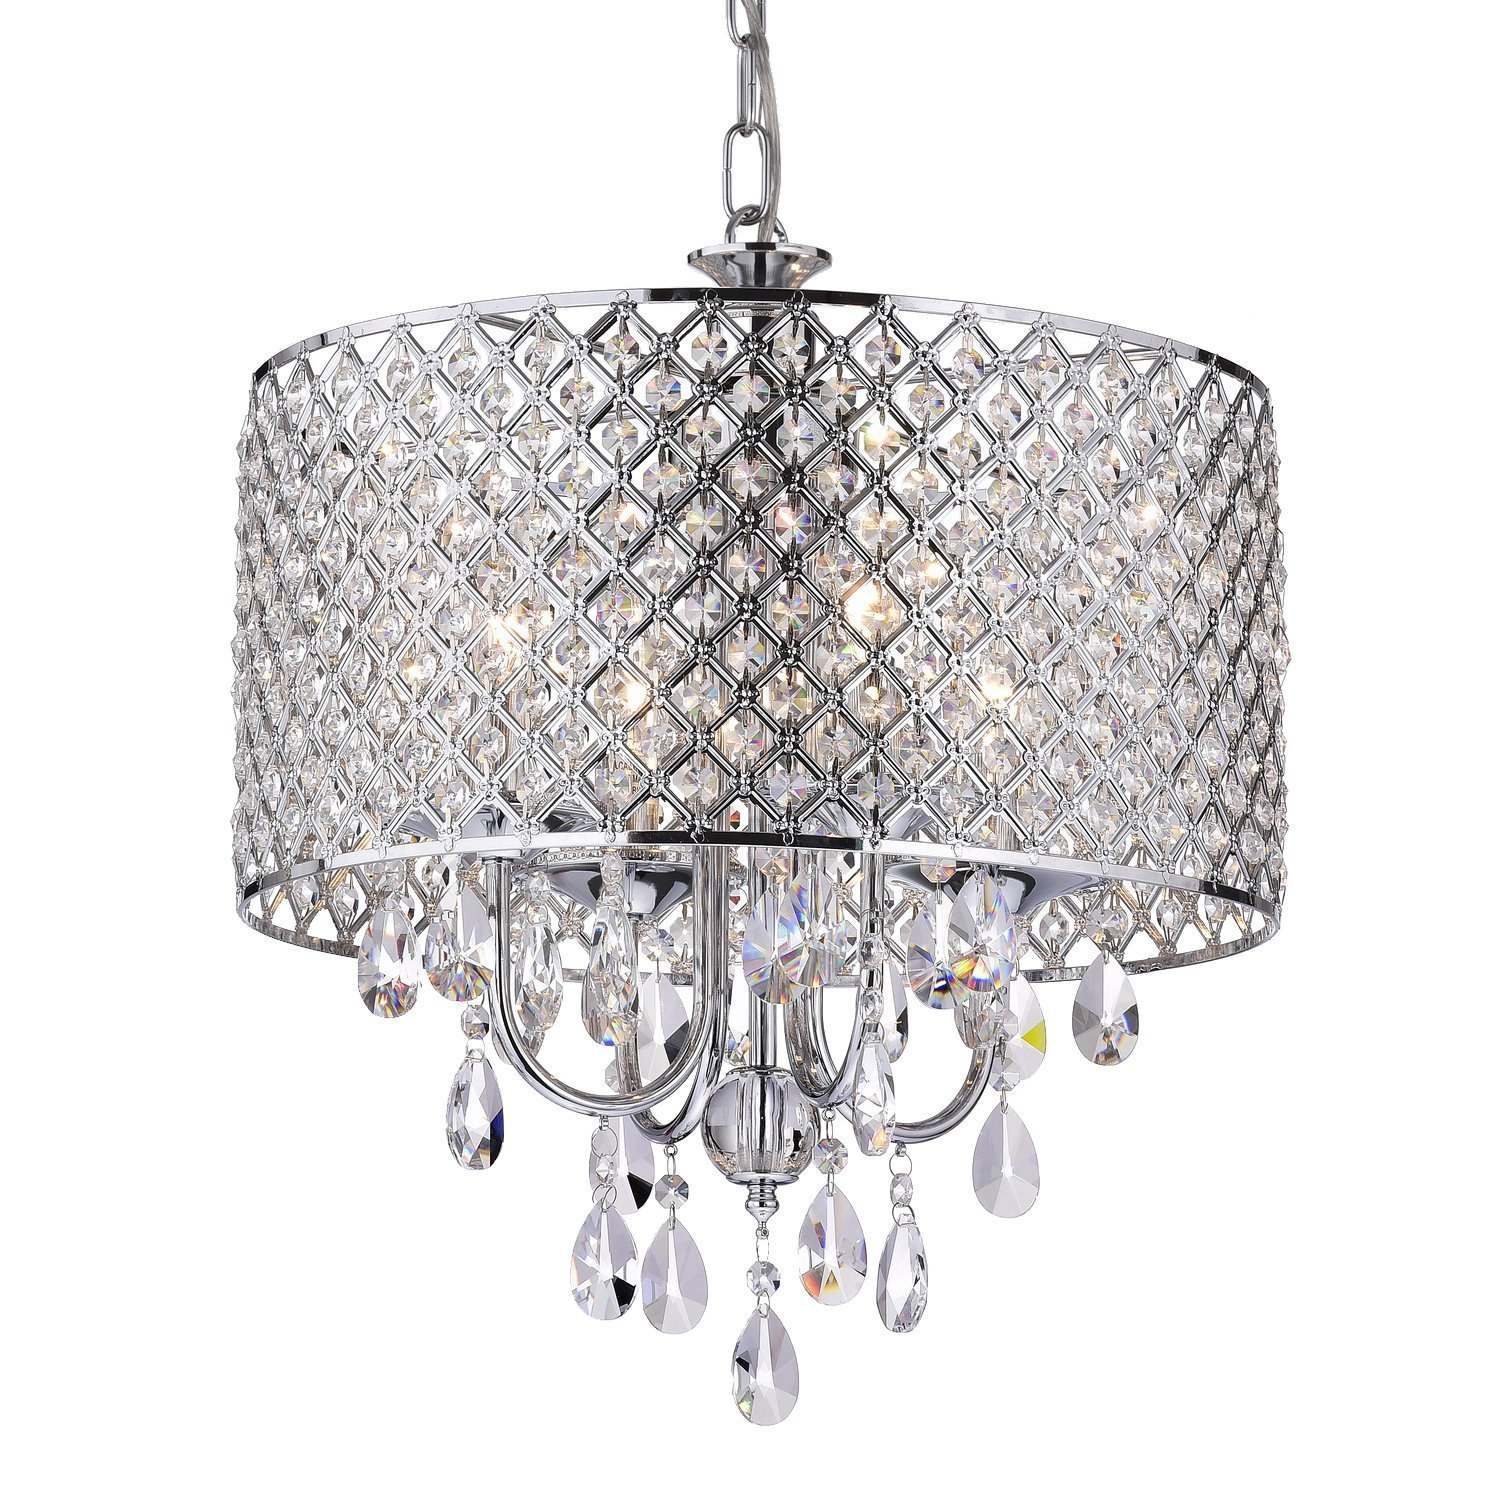 Chandeliers Amazon – Stores That Sell Chandeliers